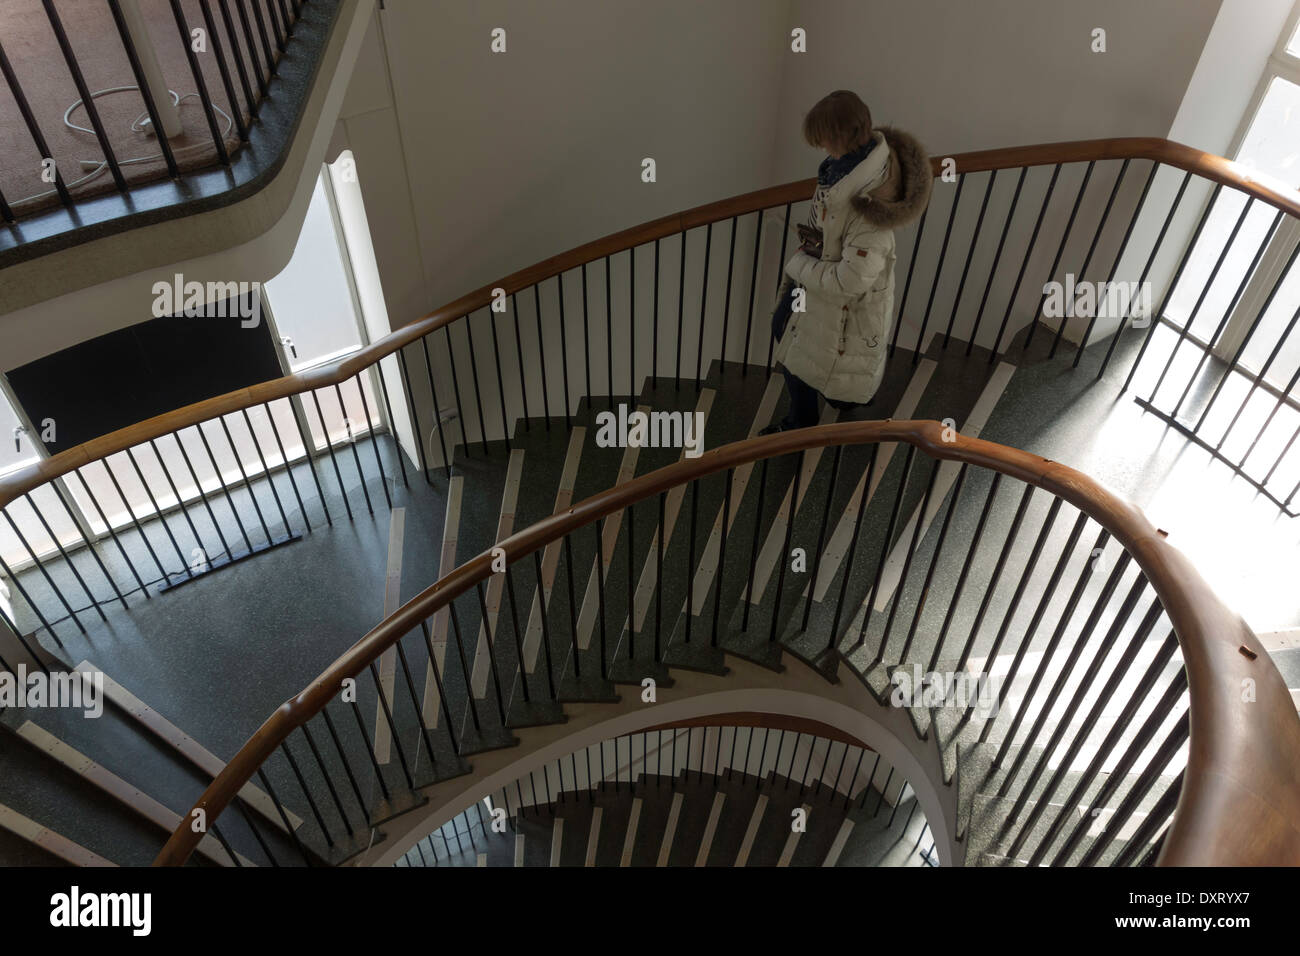 A Woman Walking Down A 1950u0027s Spiral Staircase In A Department Store